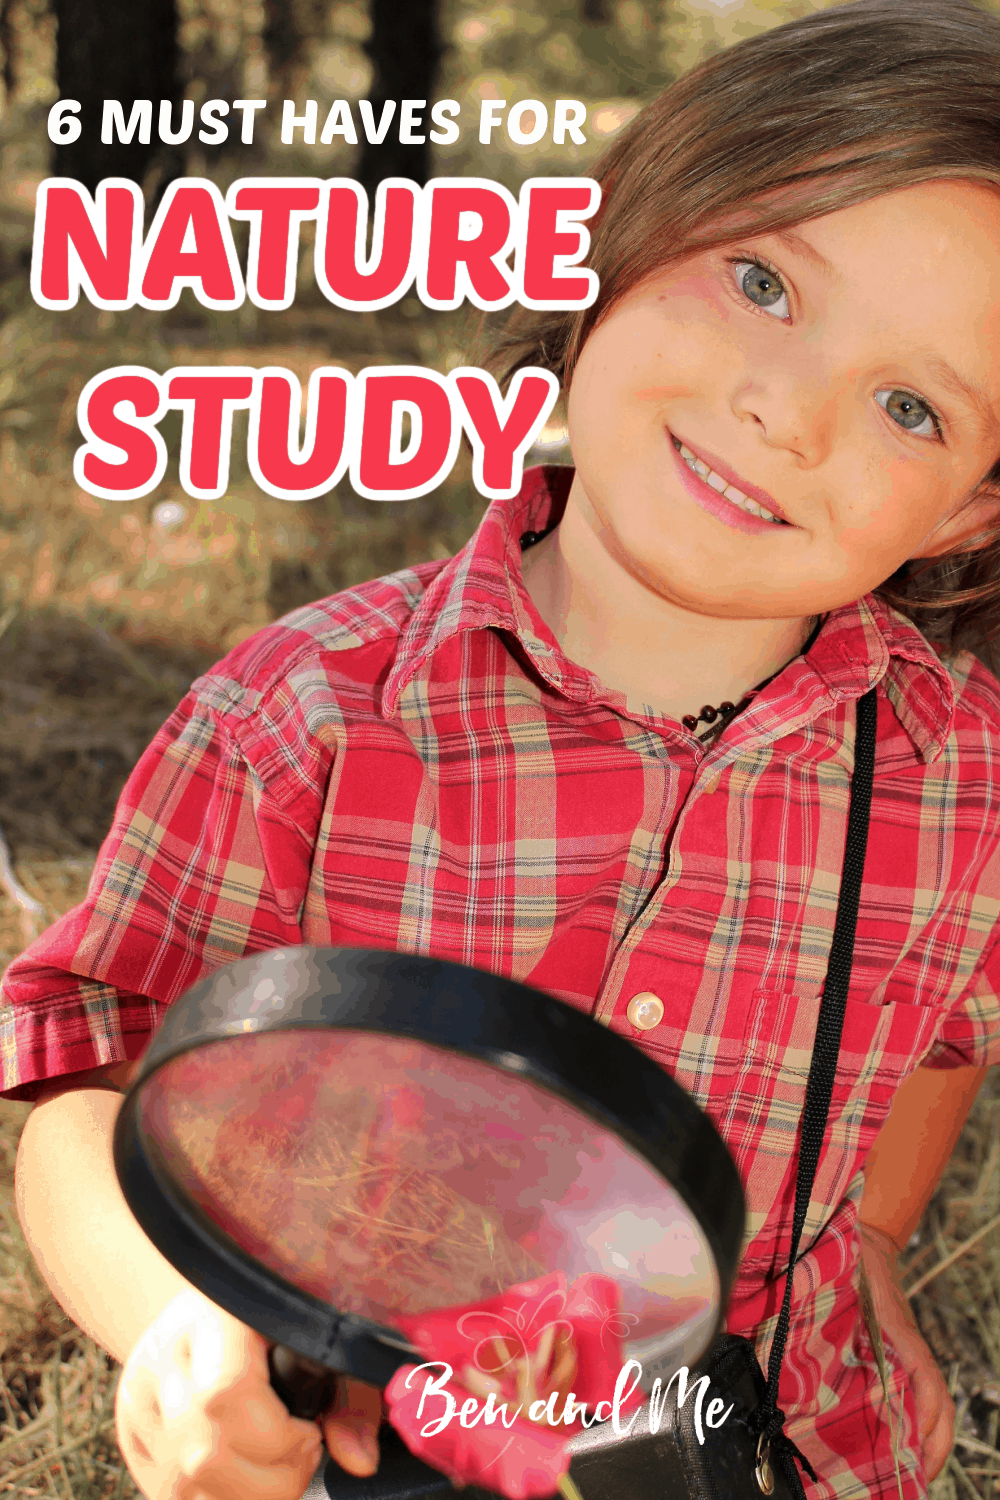 must haves for nature study